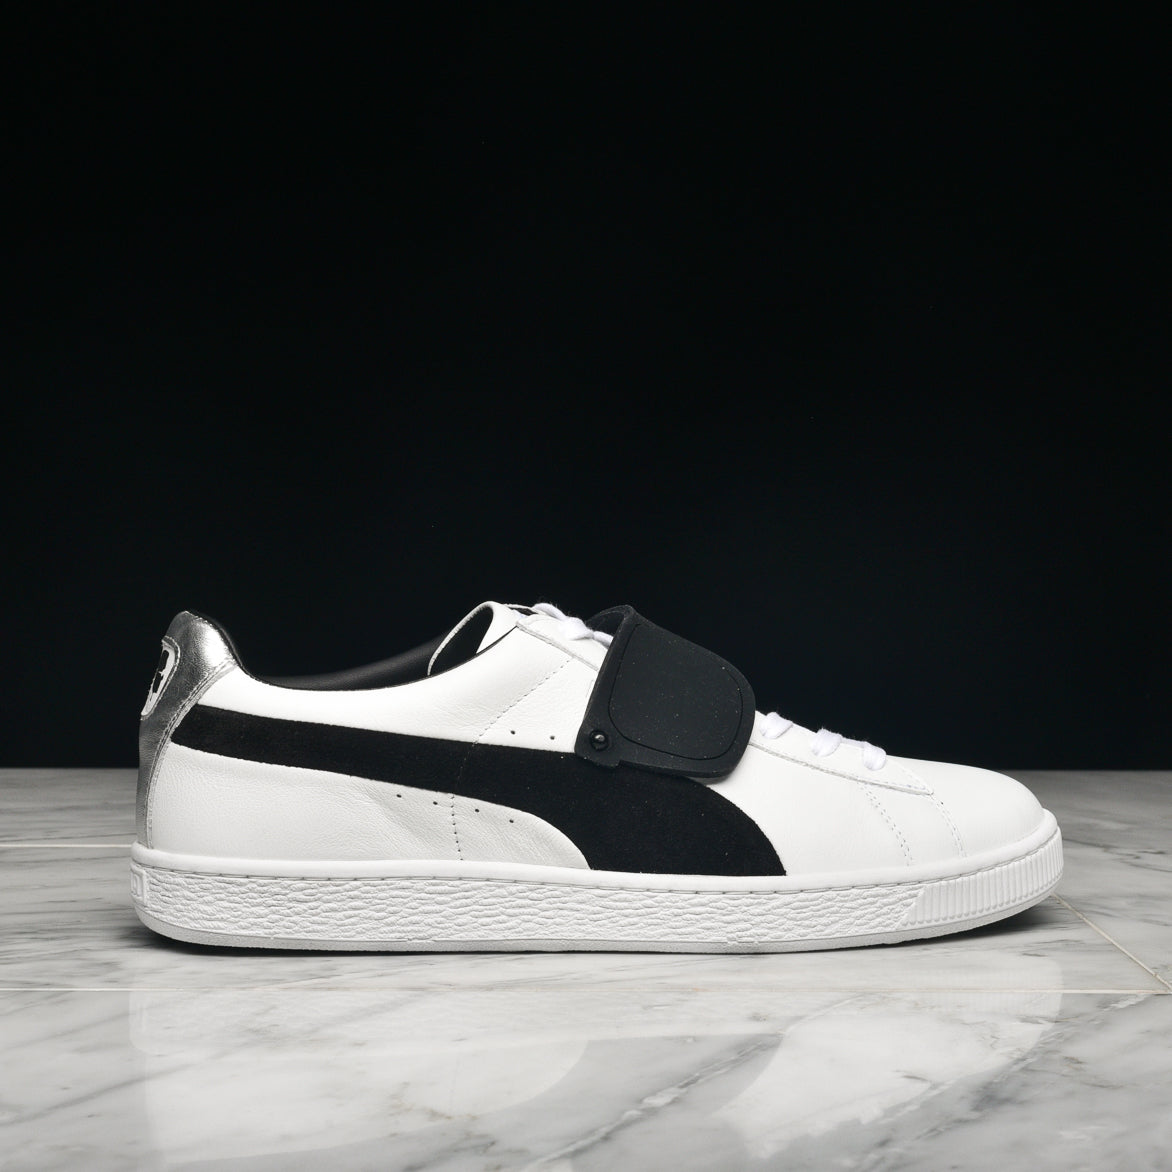 4abd124723d KARL LAGERFELD X PUMA SUEDE CLASSIC - WHITE   BLACK ...